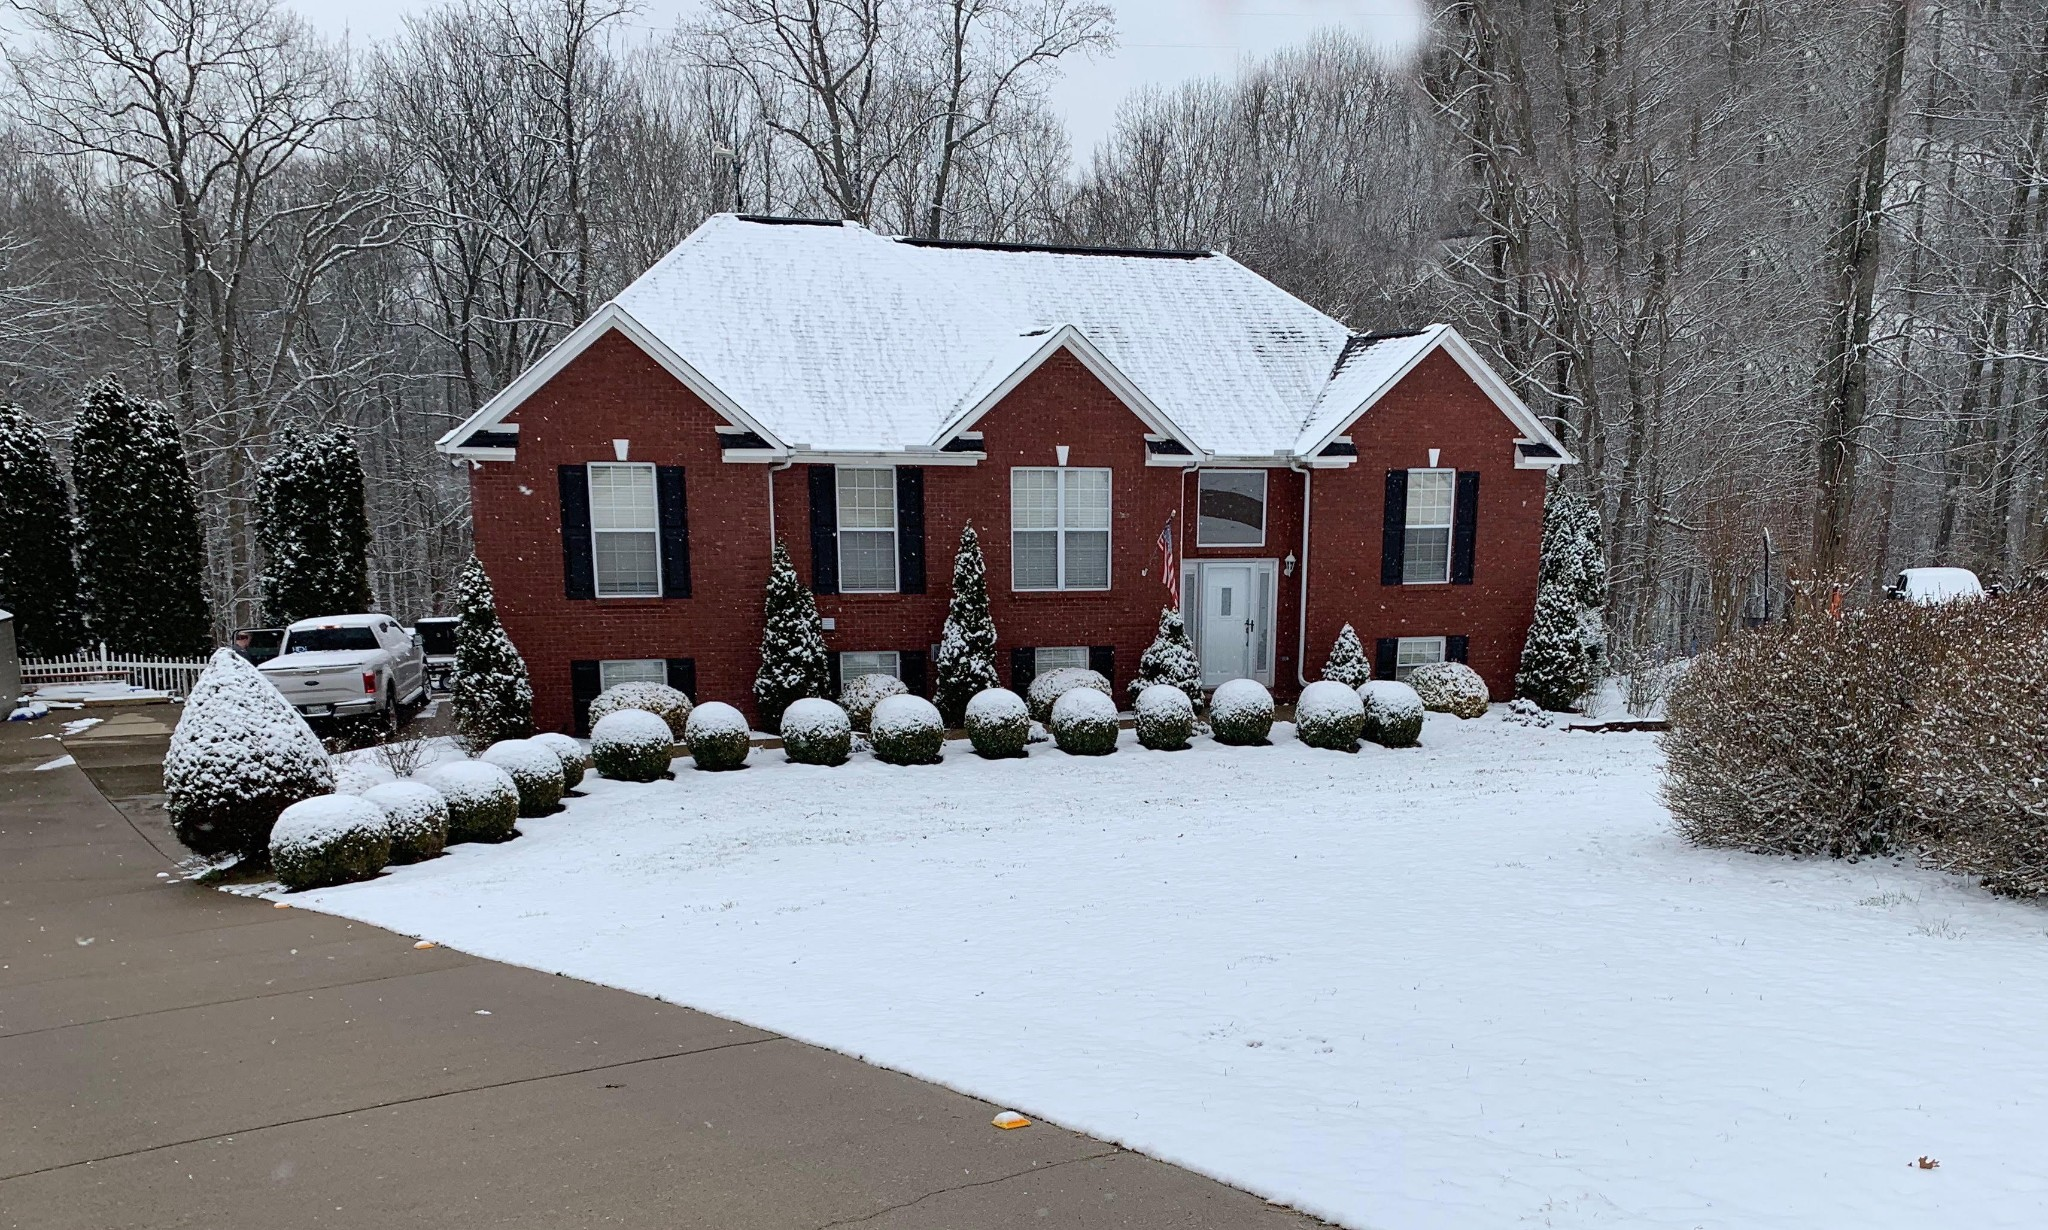 1.5 acres. Cul-de-sac. Roof and water heater 2016. New floors 2018. Finished walkout basement with full bath, living room, bedroom, bathroom, kitchenette. Basement perfect for separate apartment. Perked for 3 BR. 3 car garage. All brick. 10 min to I-65. Well cared for house. New deck and gutter guards in 2020. Current owner relocating. Seller cannot accept sale of home contingency. No showings until January 18th, 2021